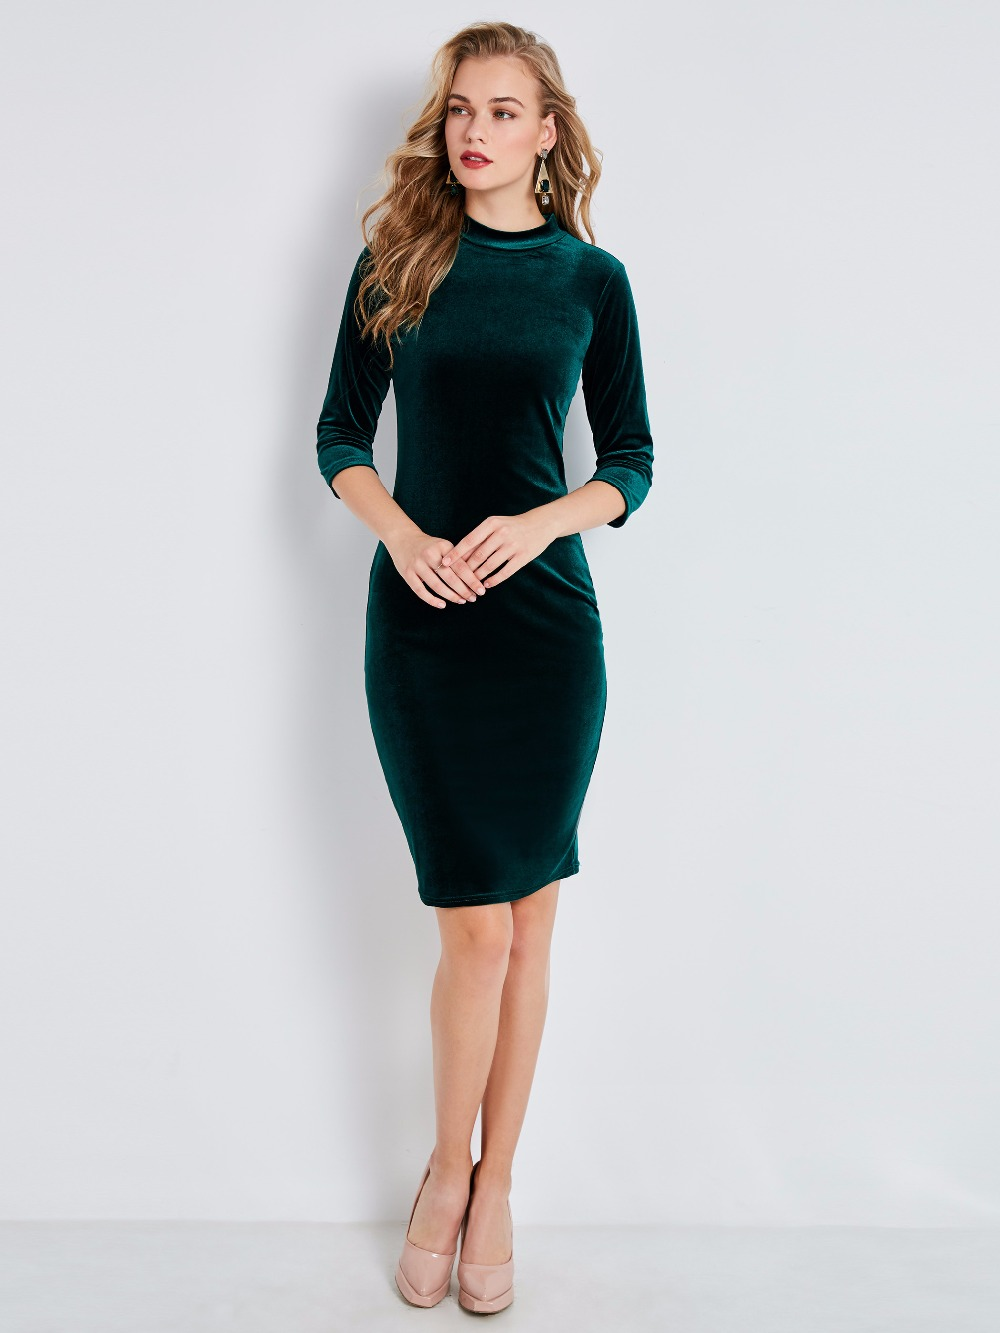 Enchanting Rosetic Bodycon Dress Women Hunter Green Autumn Stand Collar Plain Waistparty Sheath Slim Goth Female Dresses Dresses Rosetic Bodycon Dress Women Hunter Green Autumn Stand Collar Plain wedding dress Hunter Green Dress